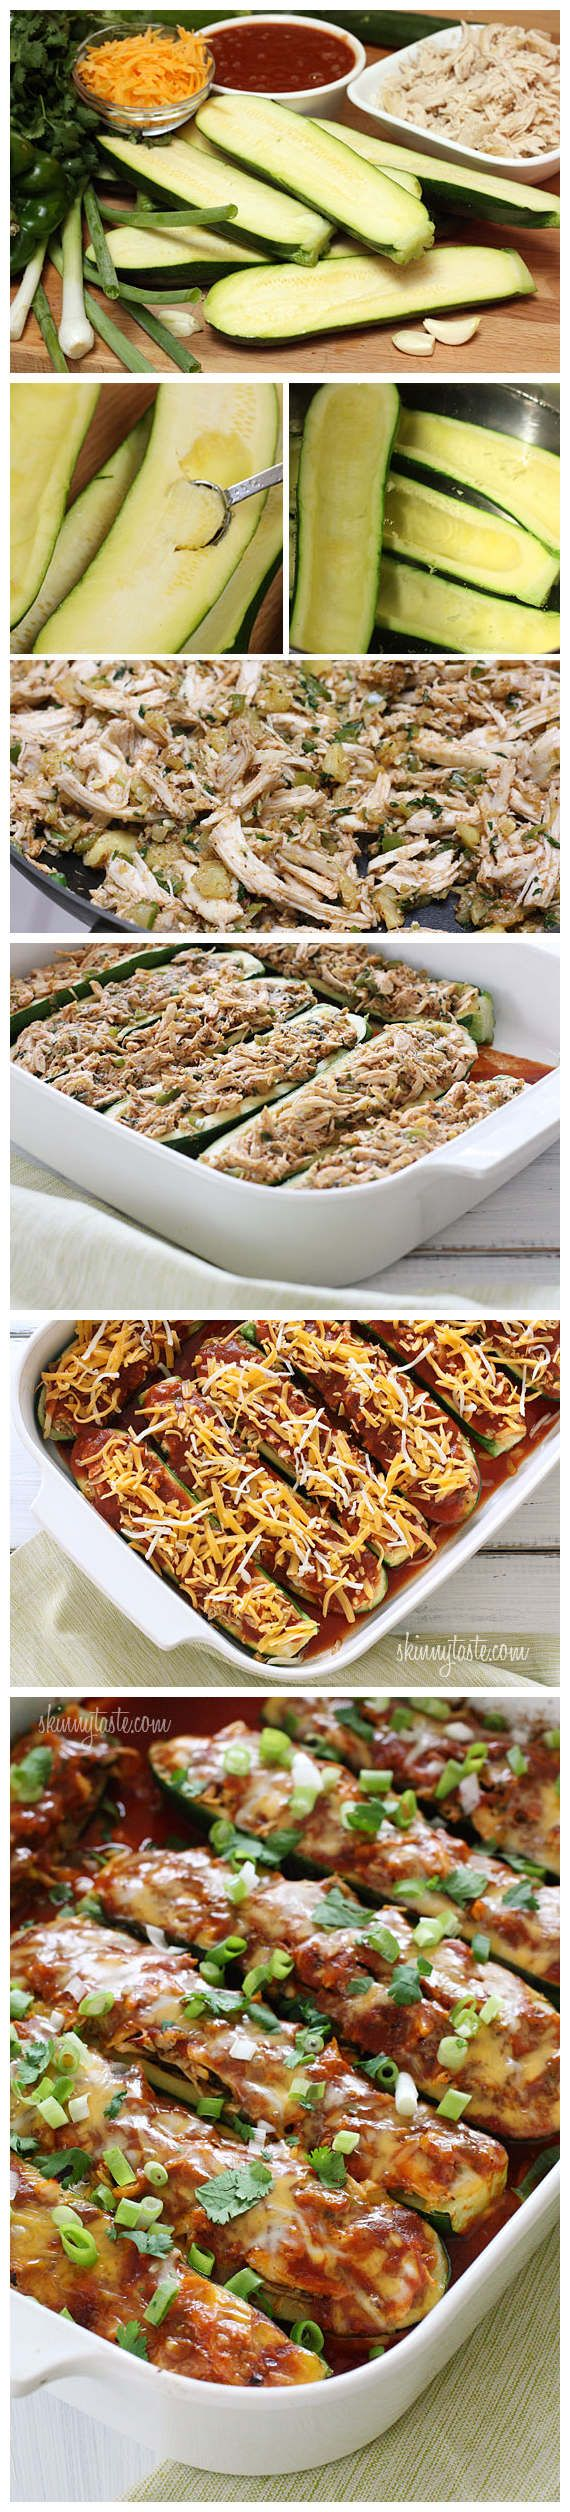 Chicken Enchilada Stuffed Zucchini Boats - joysama images